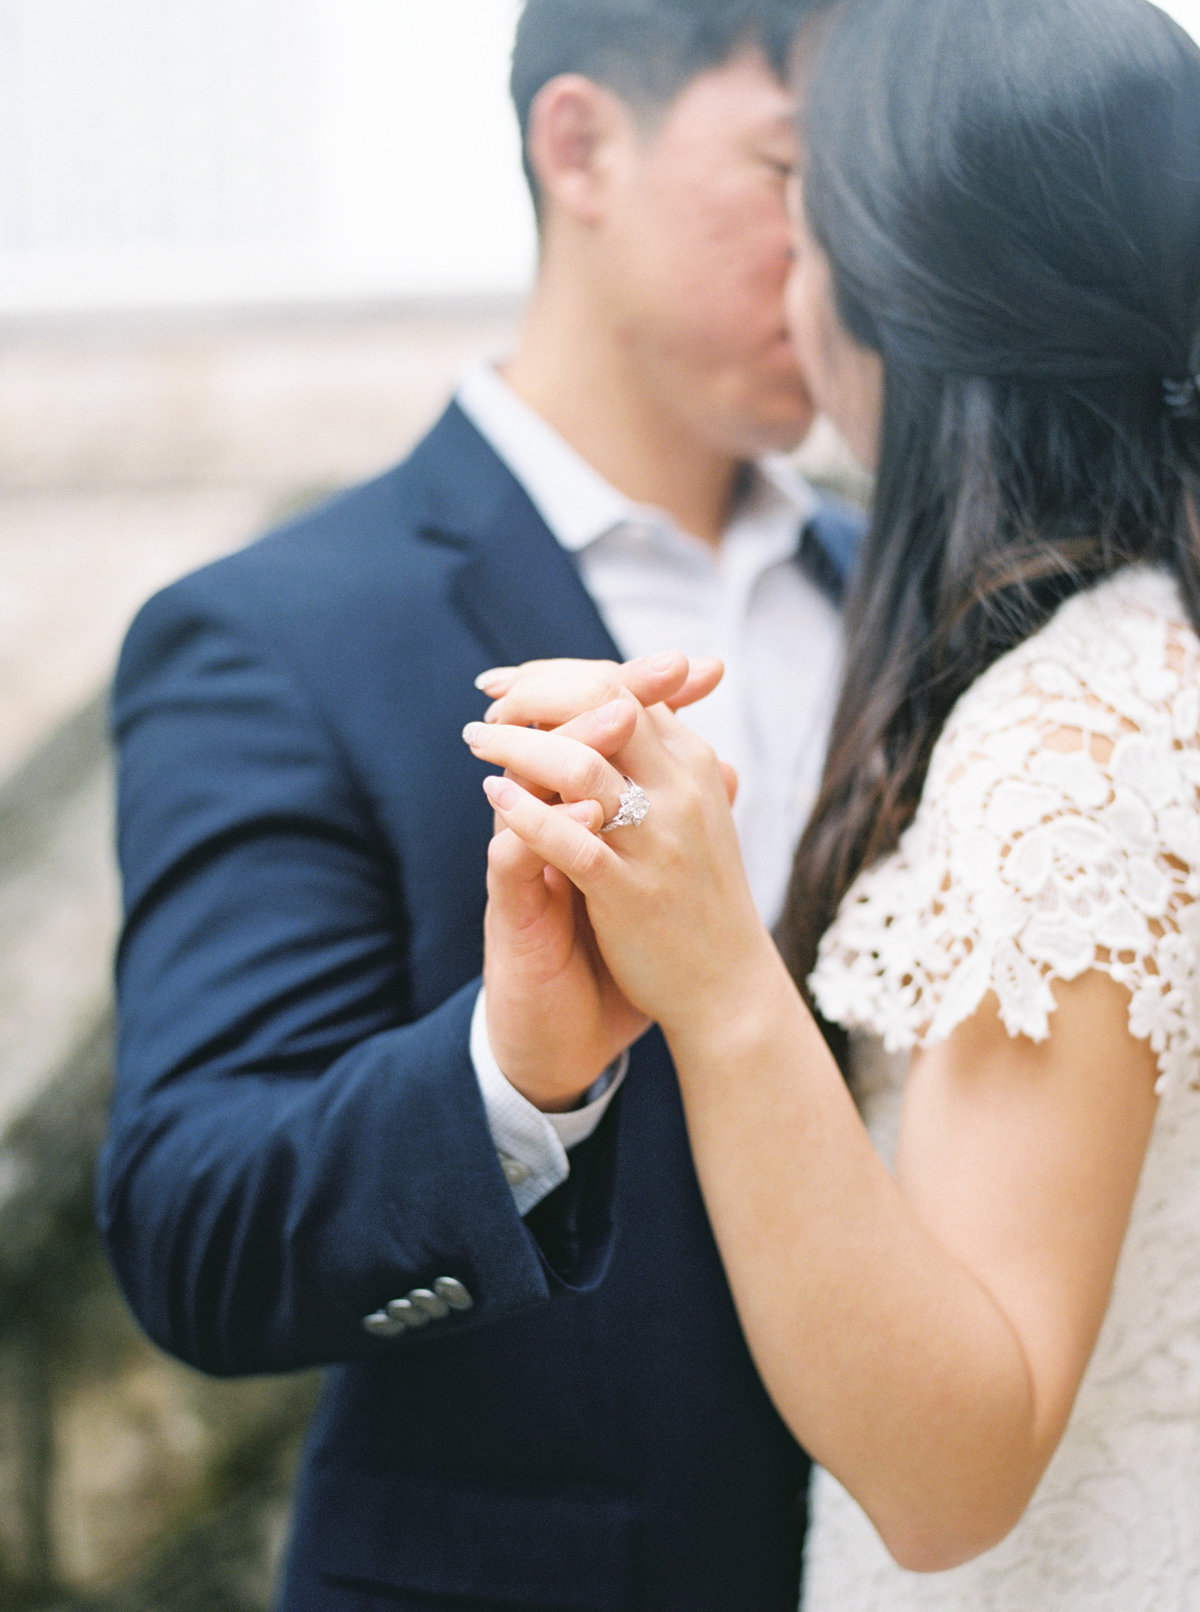 Couple kiss while locking fingers -ring photo- engagement photo